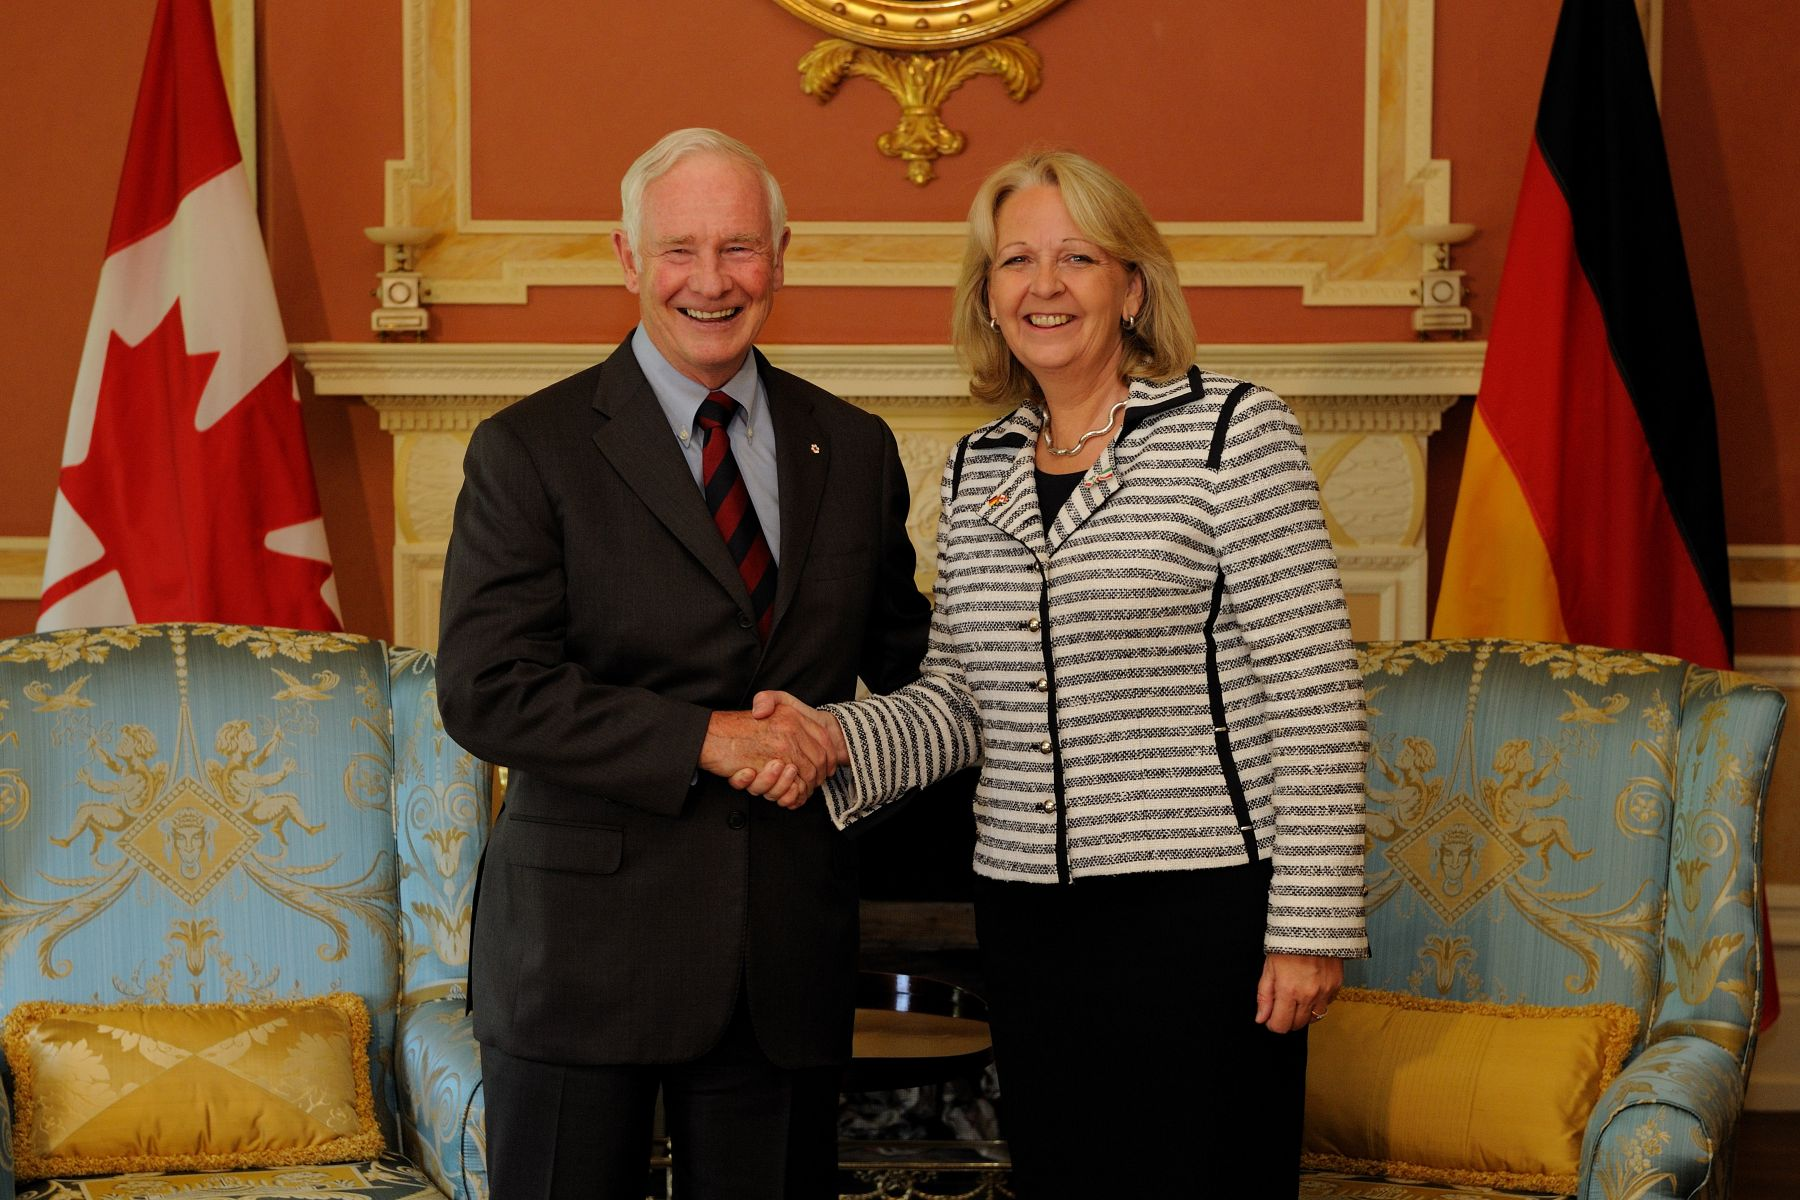 On September 8, 2011, His Excellency the Right Honourable David Johnston, Governor General of Canada, welcomed Her Excellency Hannelore Kraft, President of the Federal Council of the Federal Republic of Germany, at Rideau Hall. The meeting took place in the Large Drawing Room inside the residence.